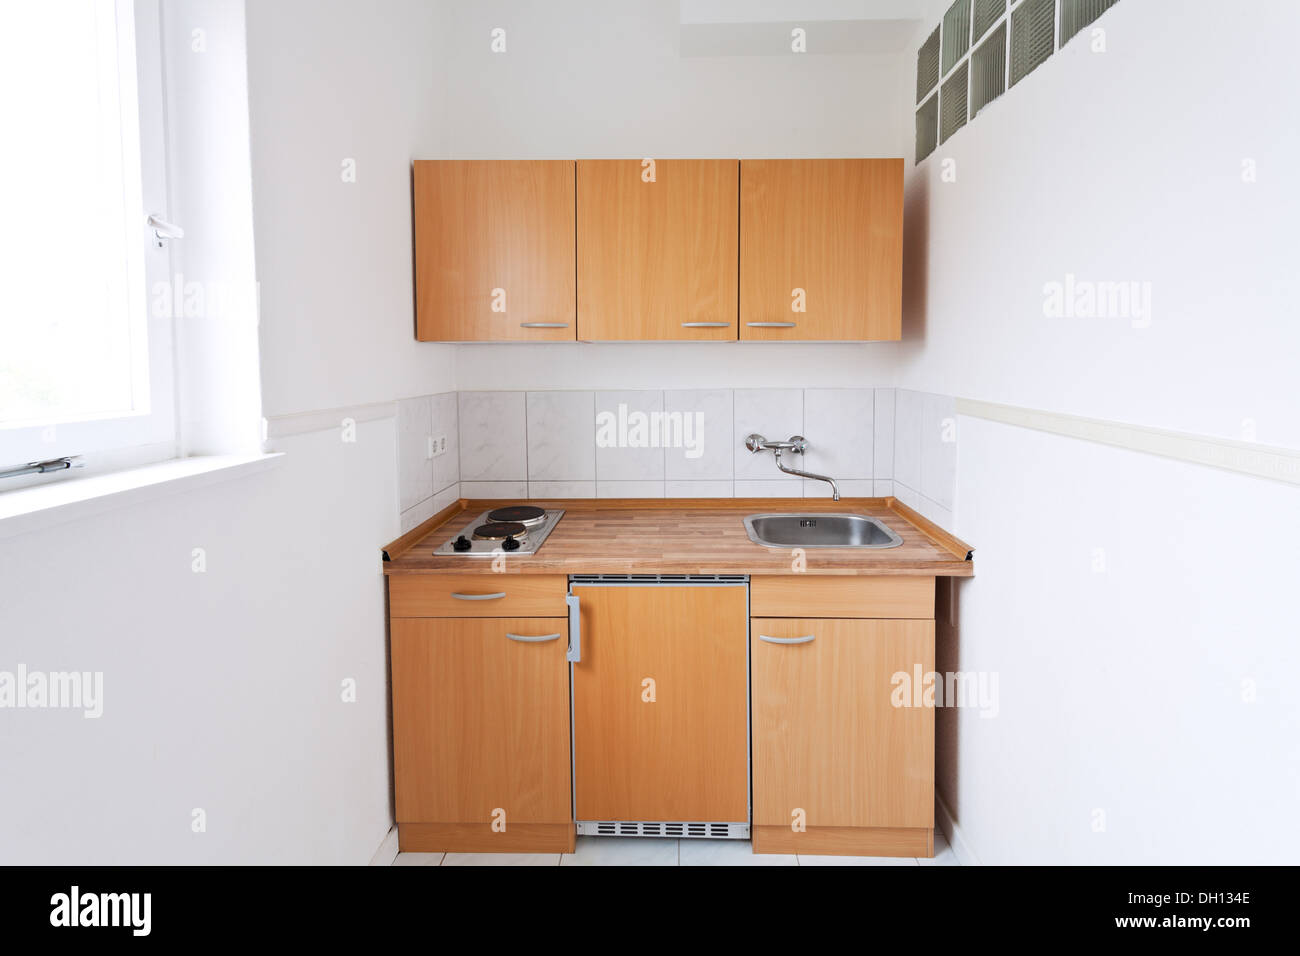 simple kitchen with window and furniture set Stock Photo